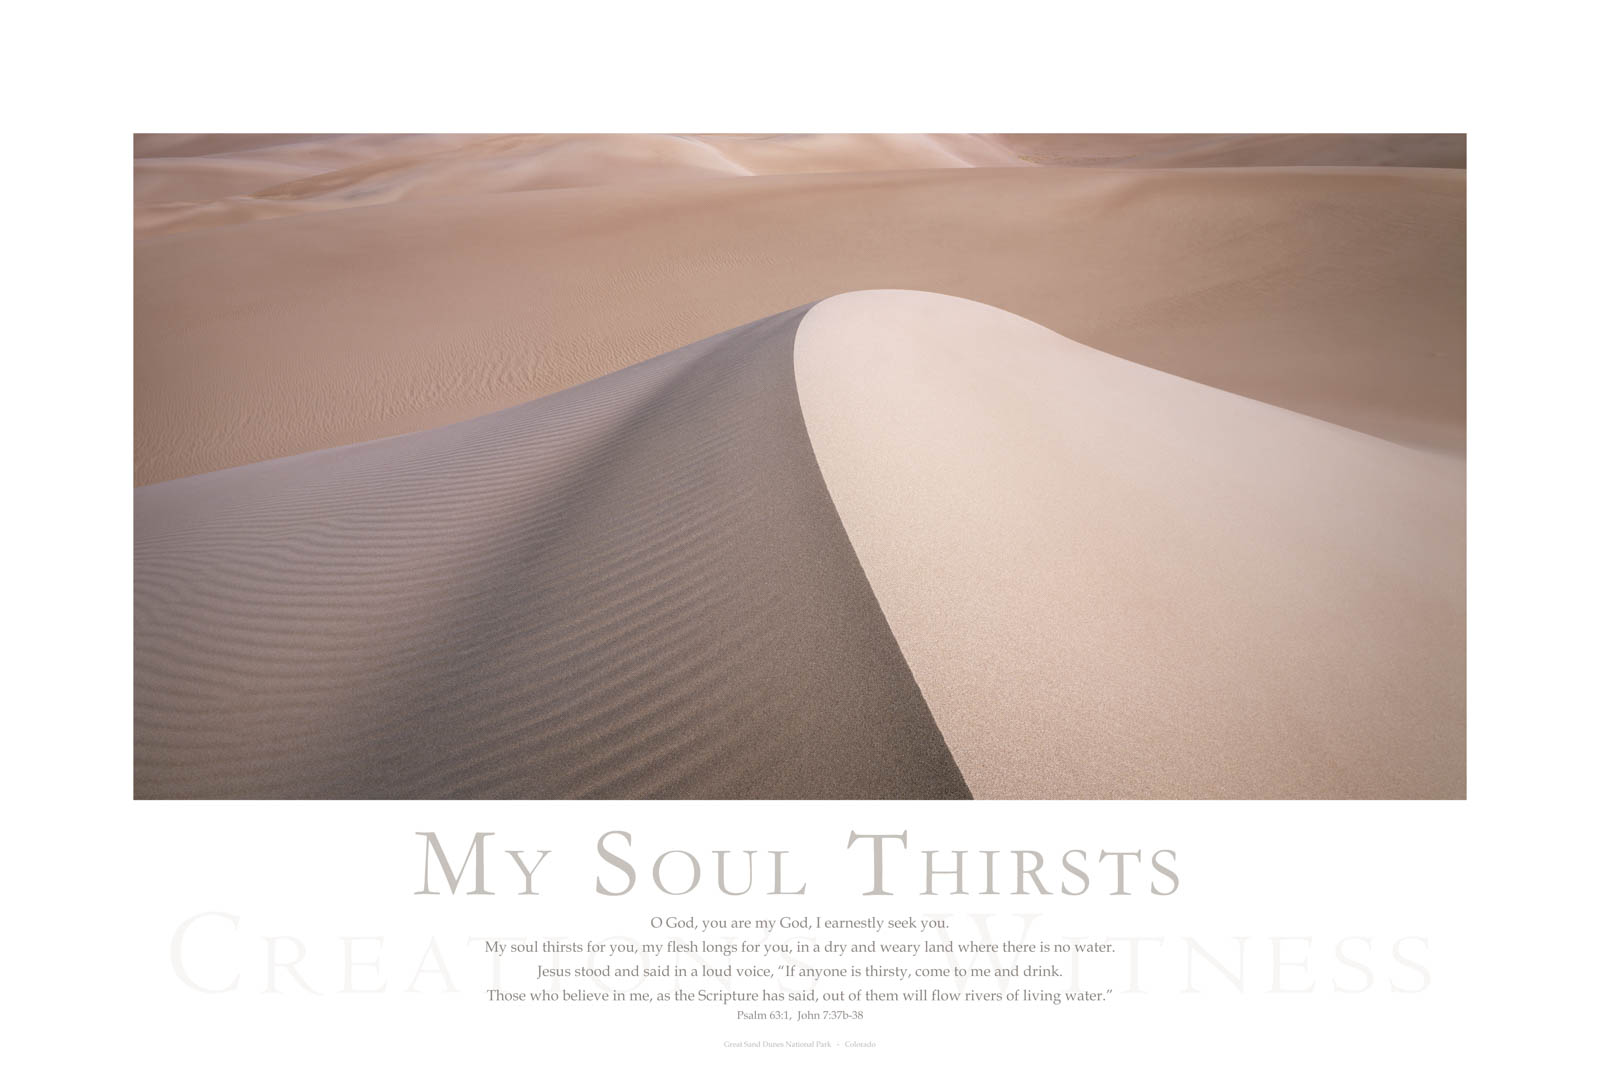 O God, you are my God, I earnestly seek you. My soul thirsts for you, my flesh longs for you, in a dry and weary land where there...